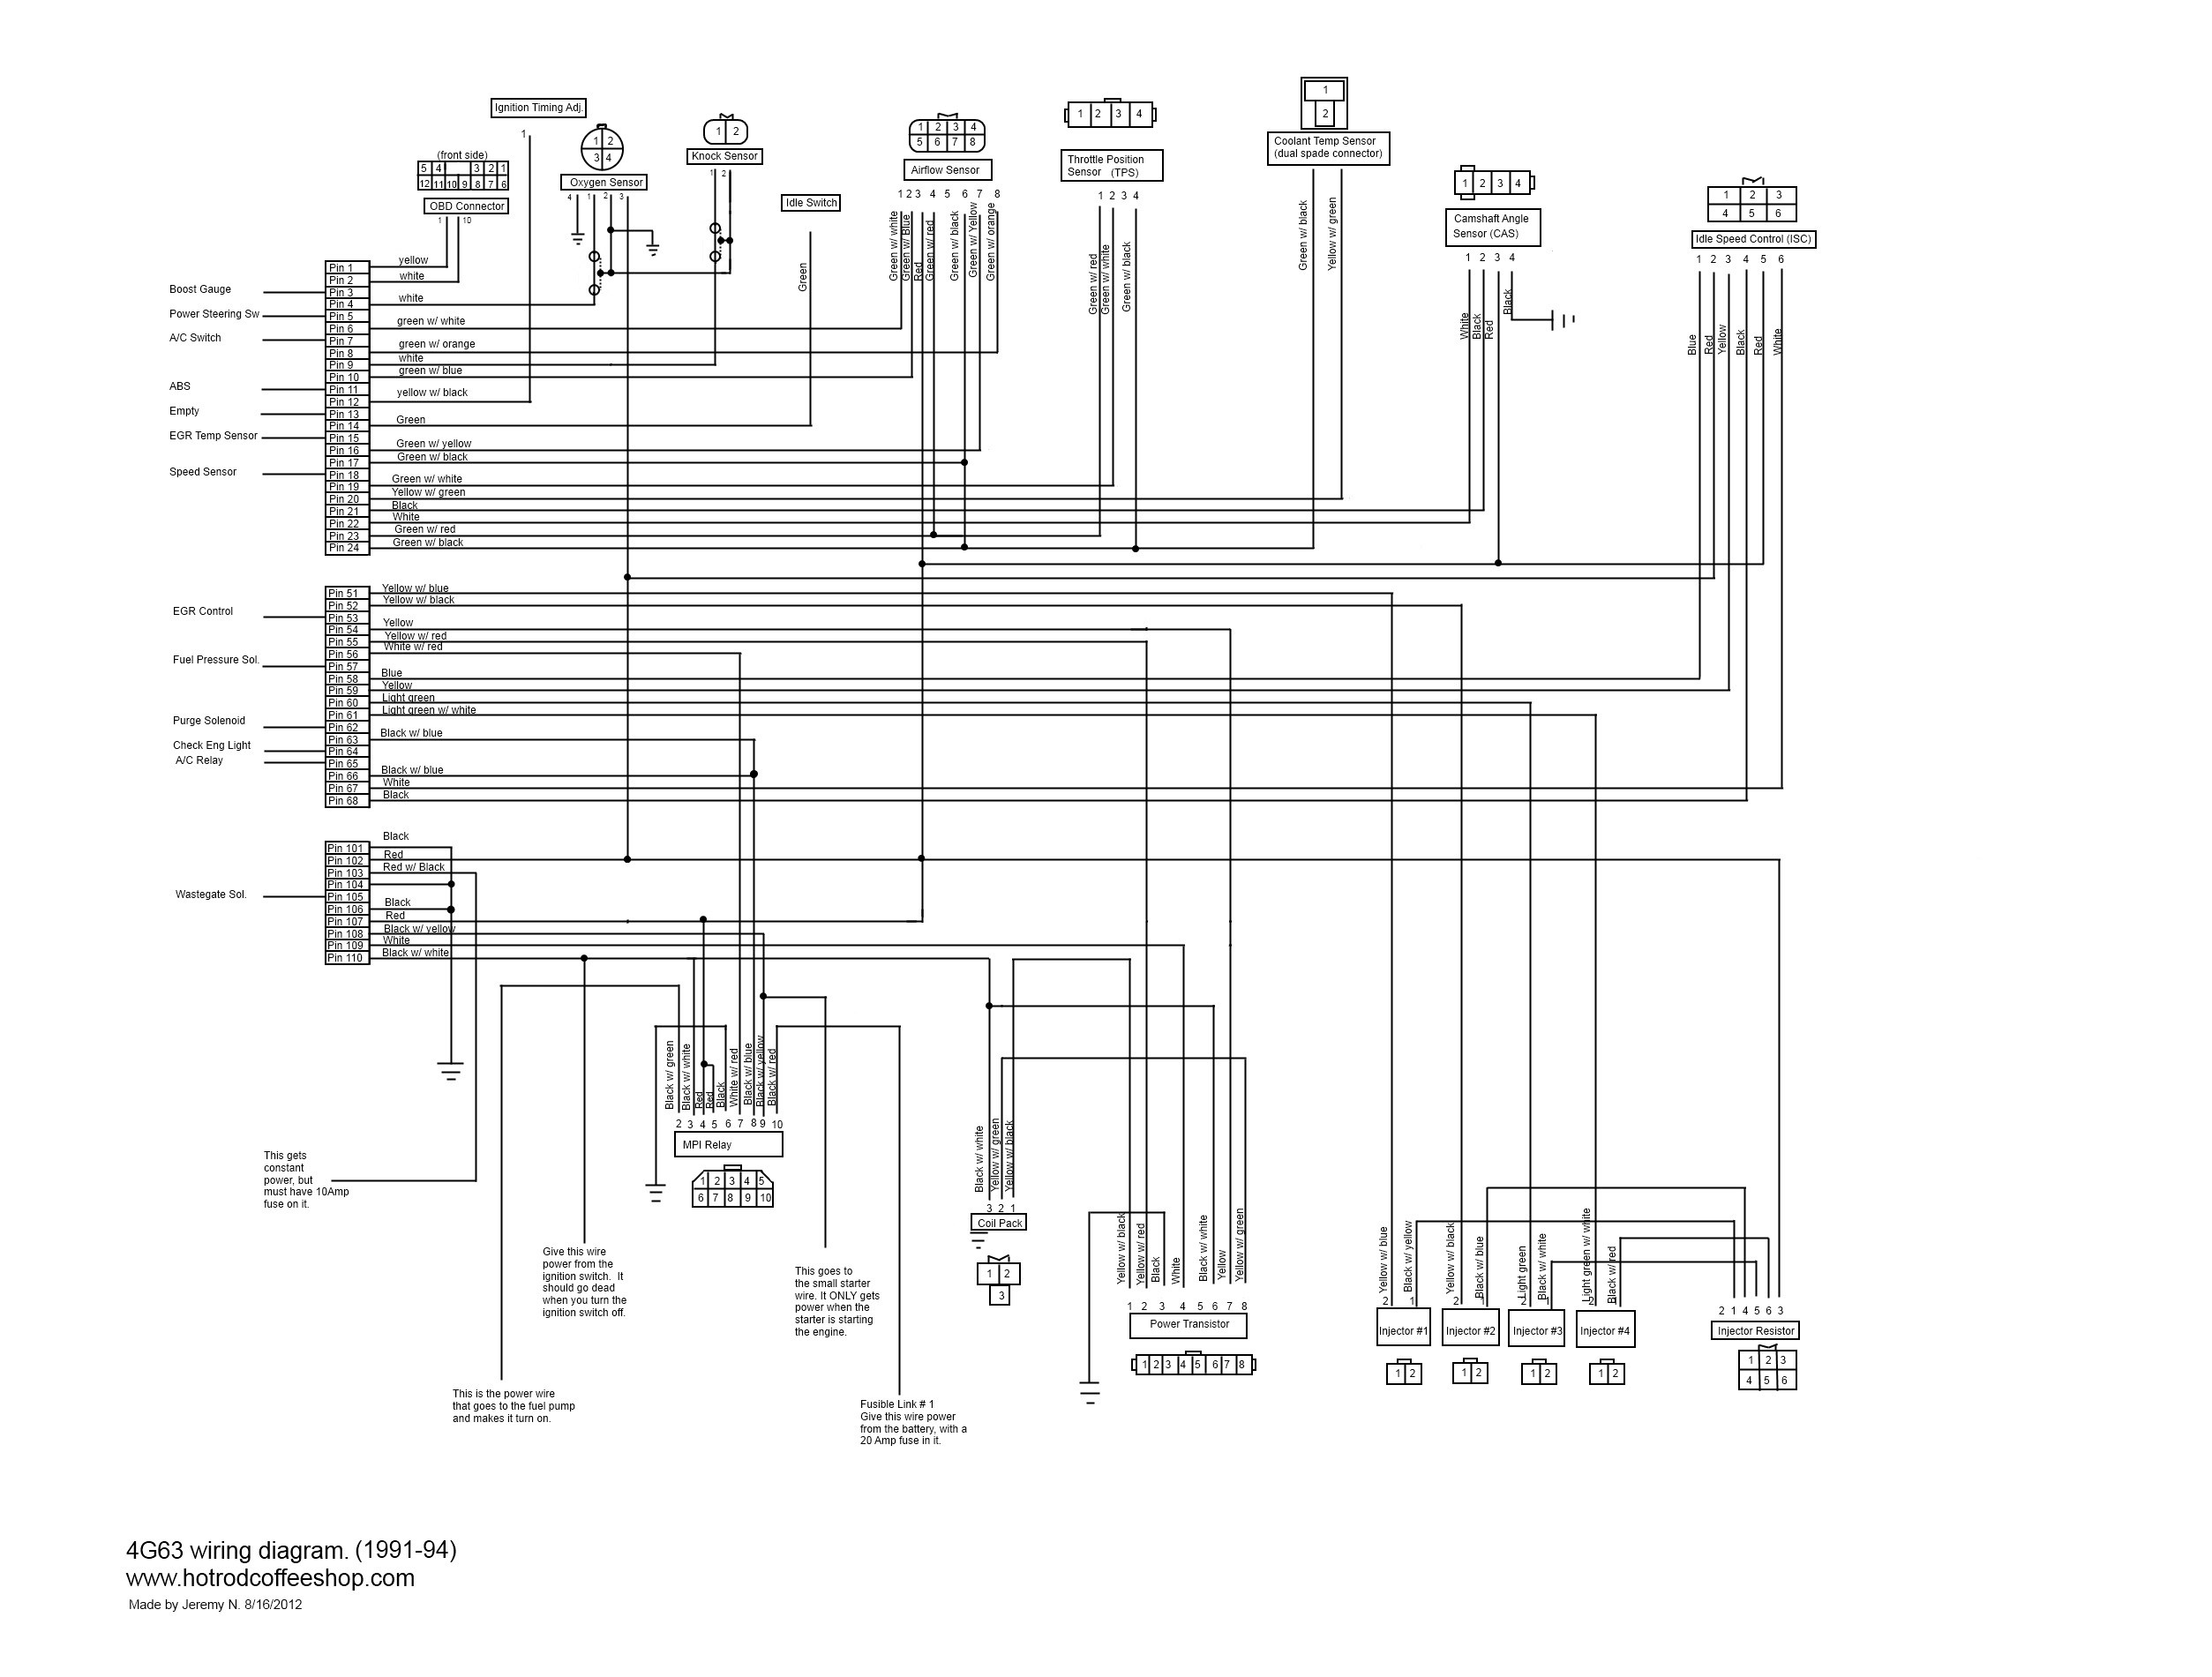 Anybody like 4G63 wiring diagrams as much as I do